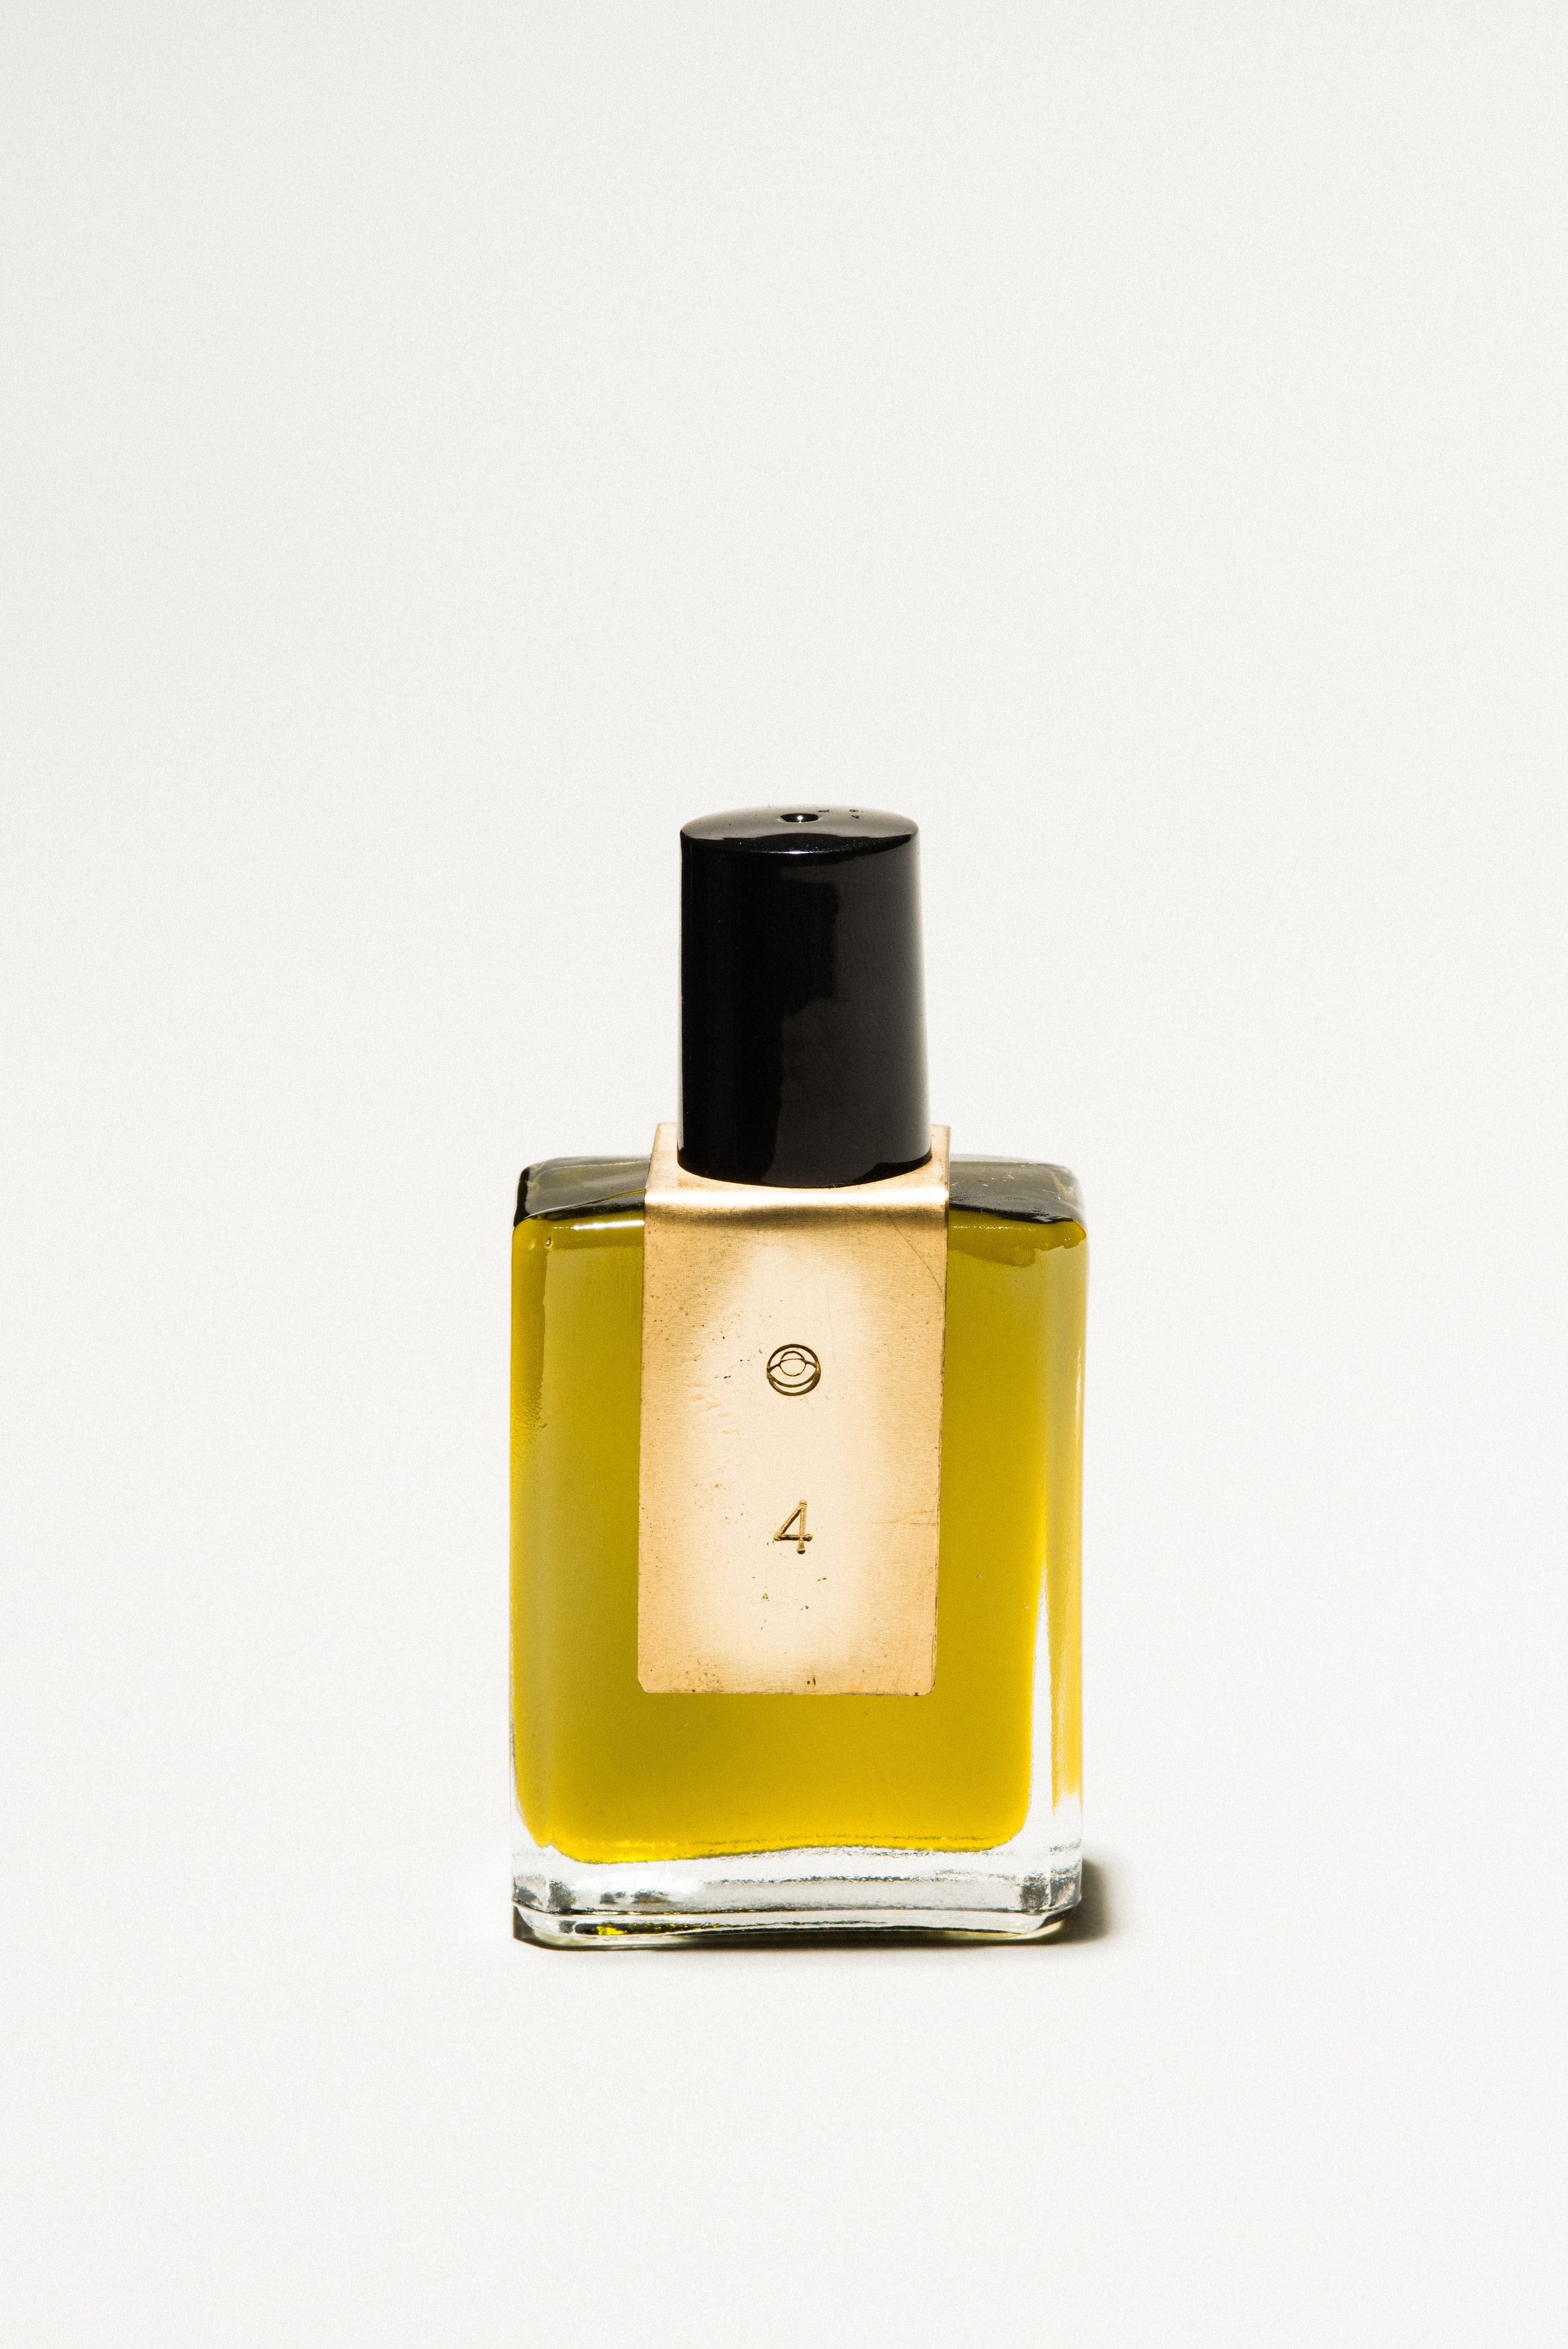 Fragrance Oil No. 4 - 4 - drops of rain touch country soil in a moment the earth blooms15ml unisex fragrance blended in studio hand smithed label$45